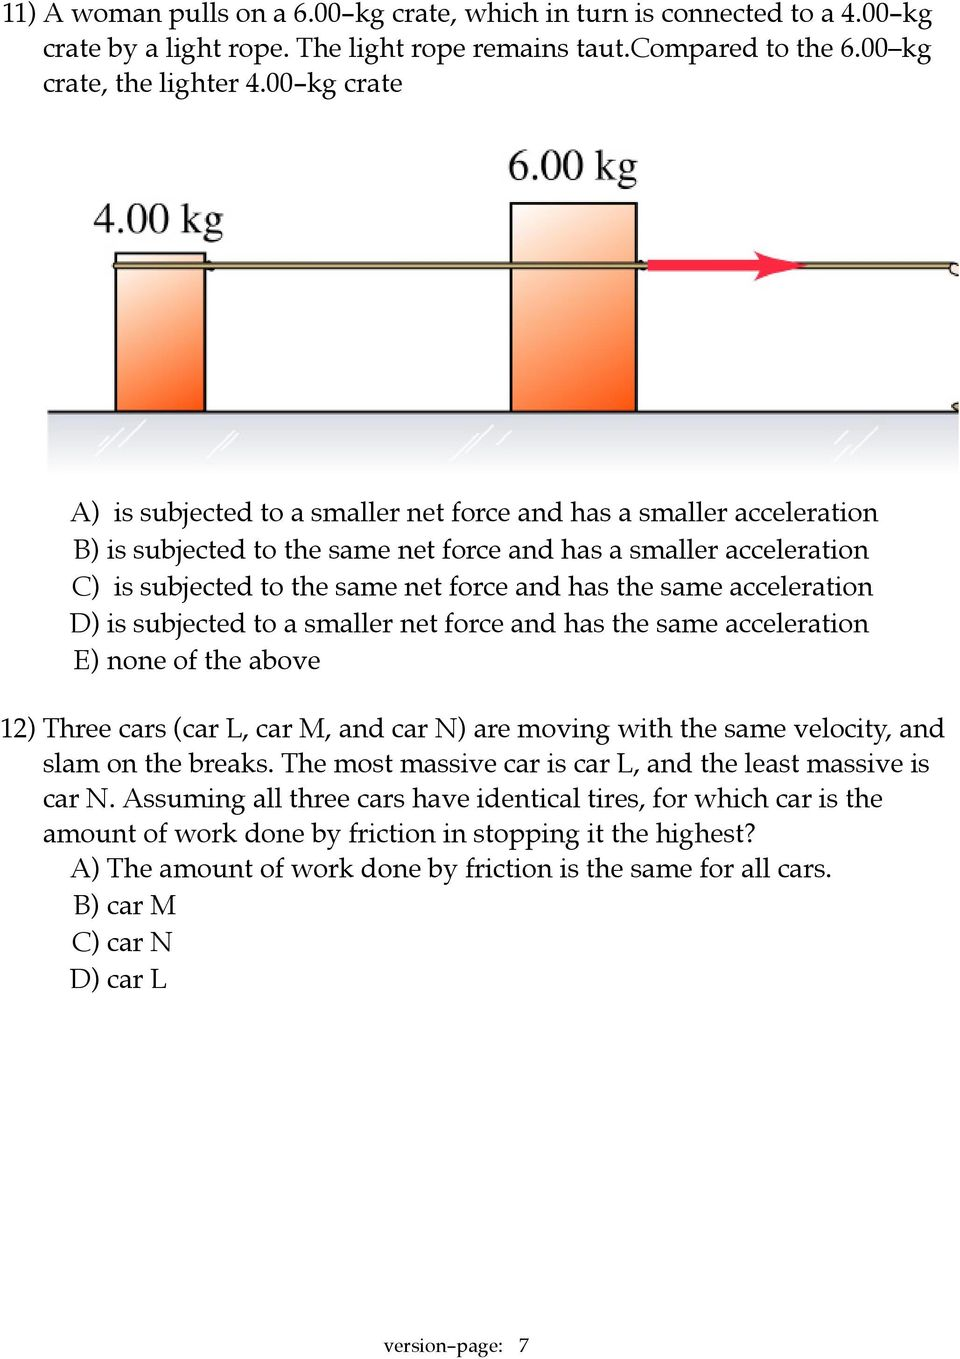 the same acceleration D) is subjected to a smaller net force and has the same acceleration E) none of the above 12) Three cars (car L, car M, and car N) are moving with the same velocity, and slam on